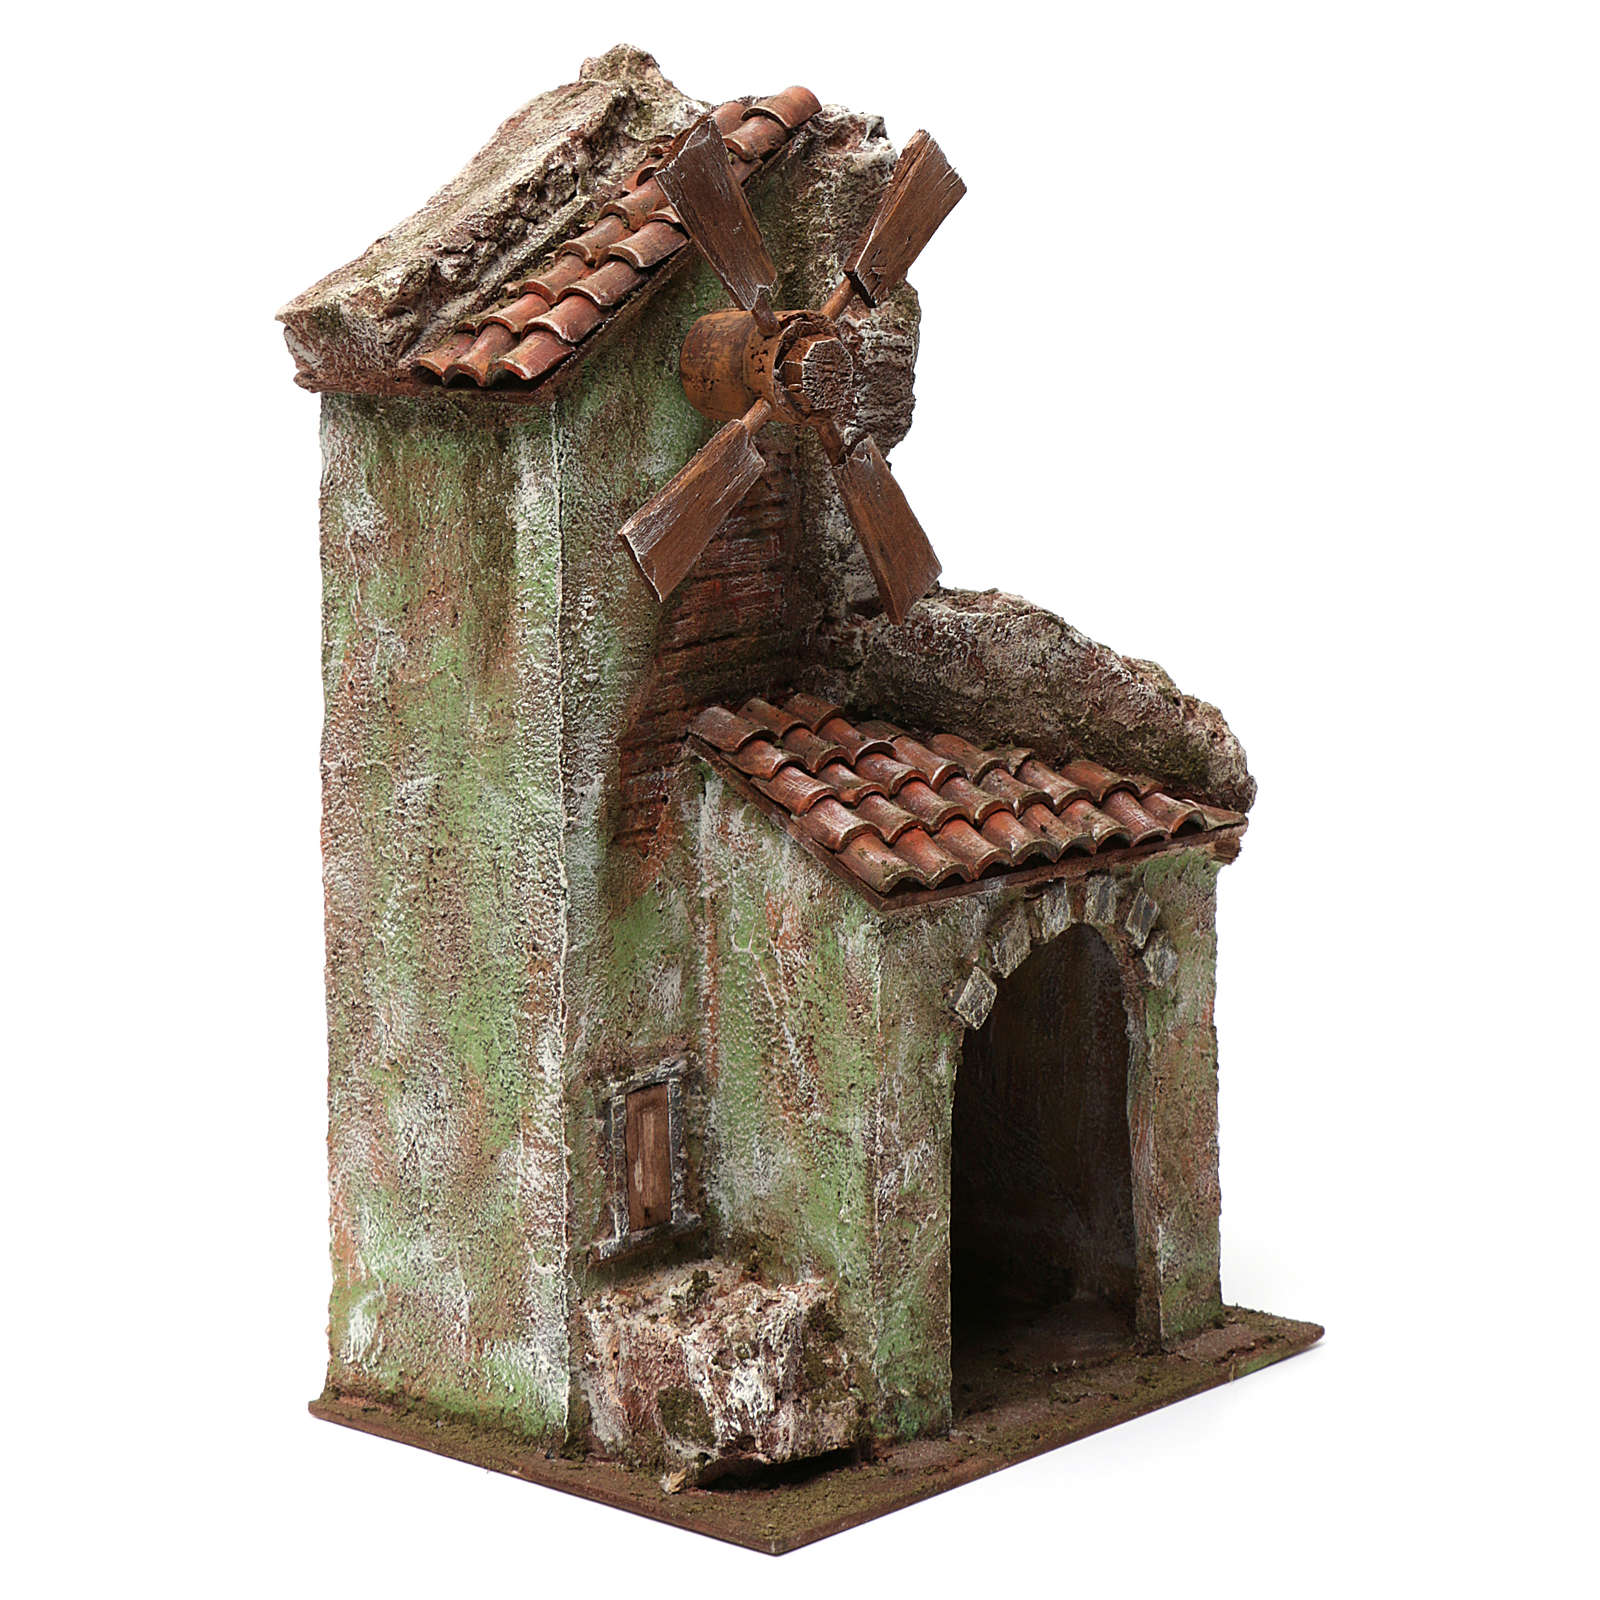 Windmill with arch and tiled roof for nativity scene 45x20x25 cm 4